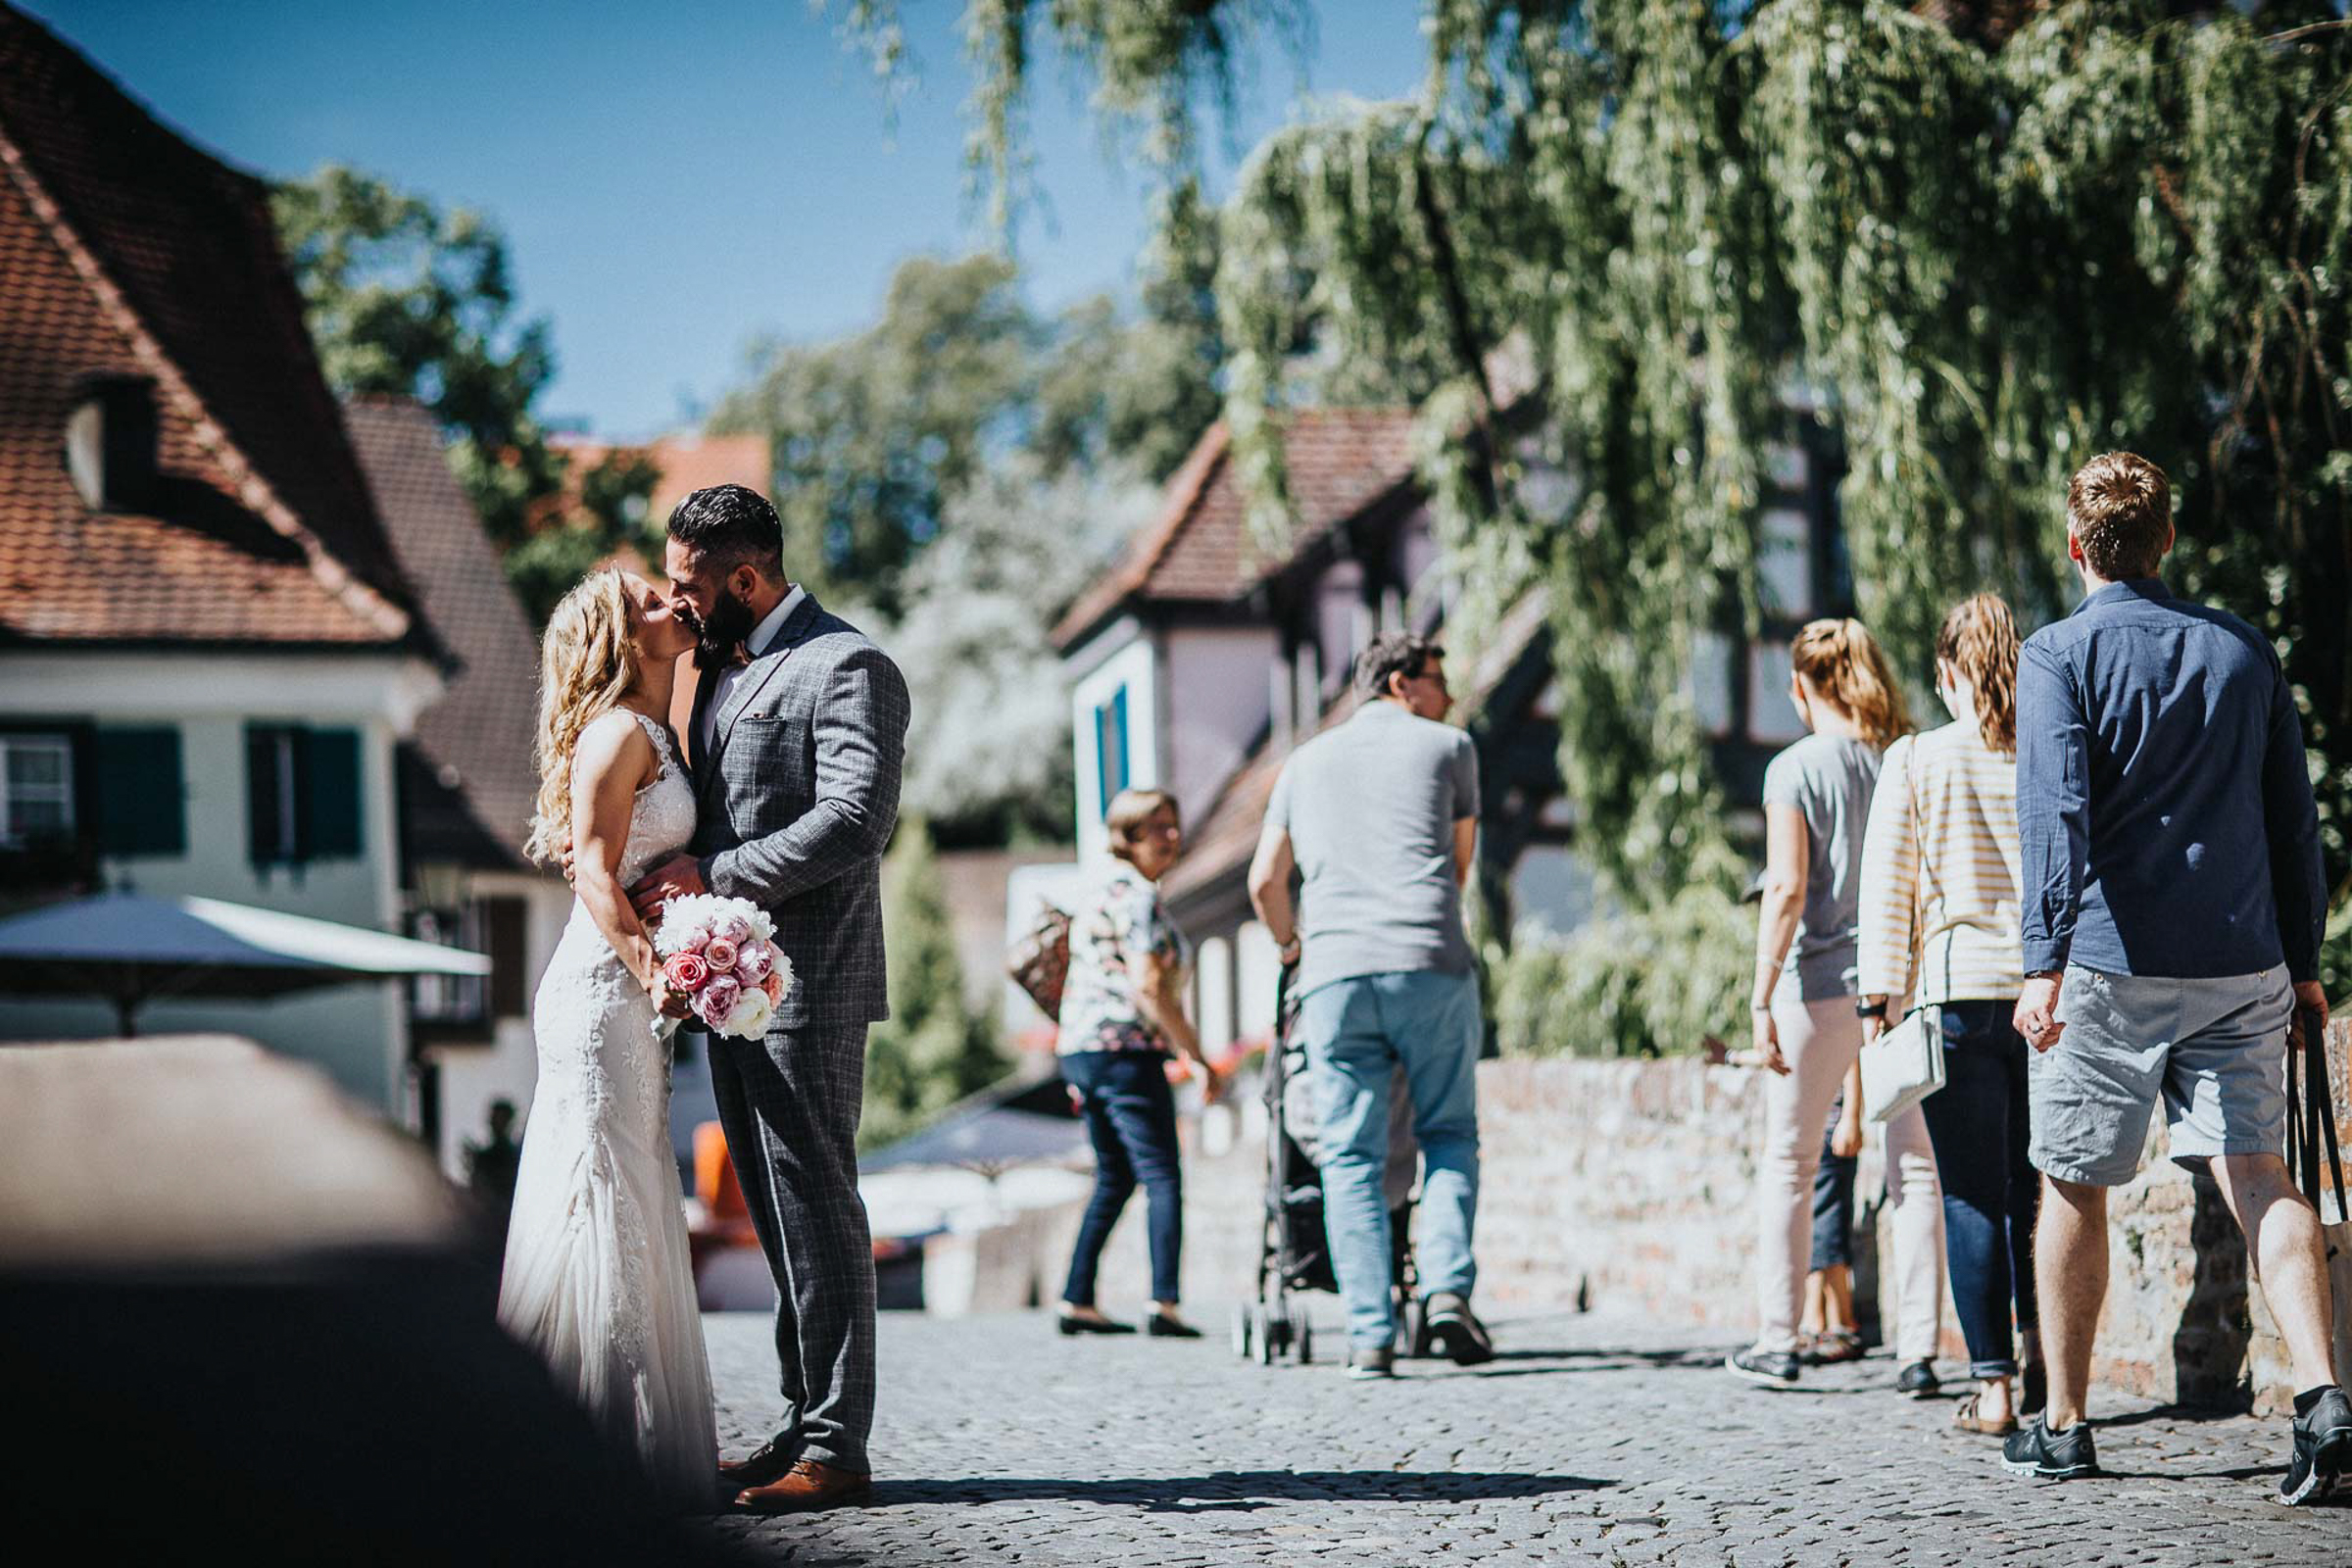 bride and groom kissing in the streets- photo by FineArt Weddings | Photography